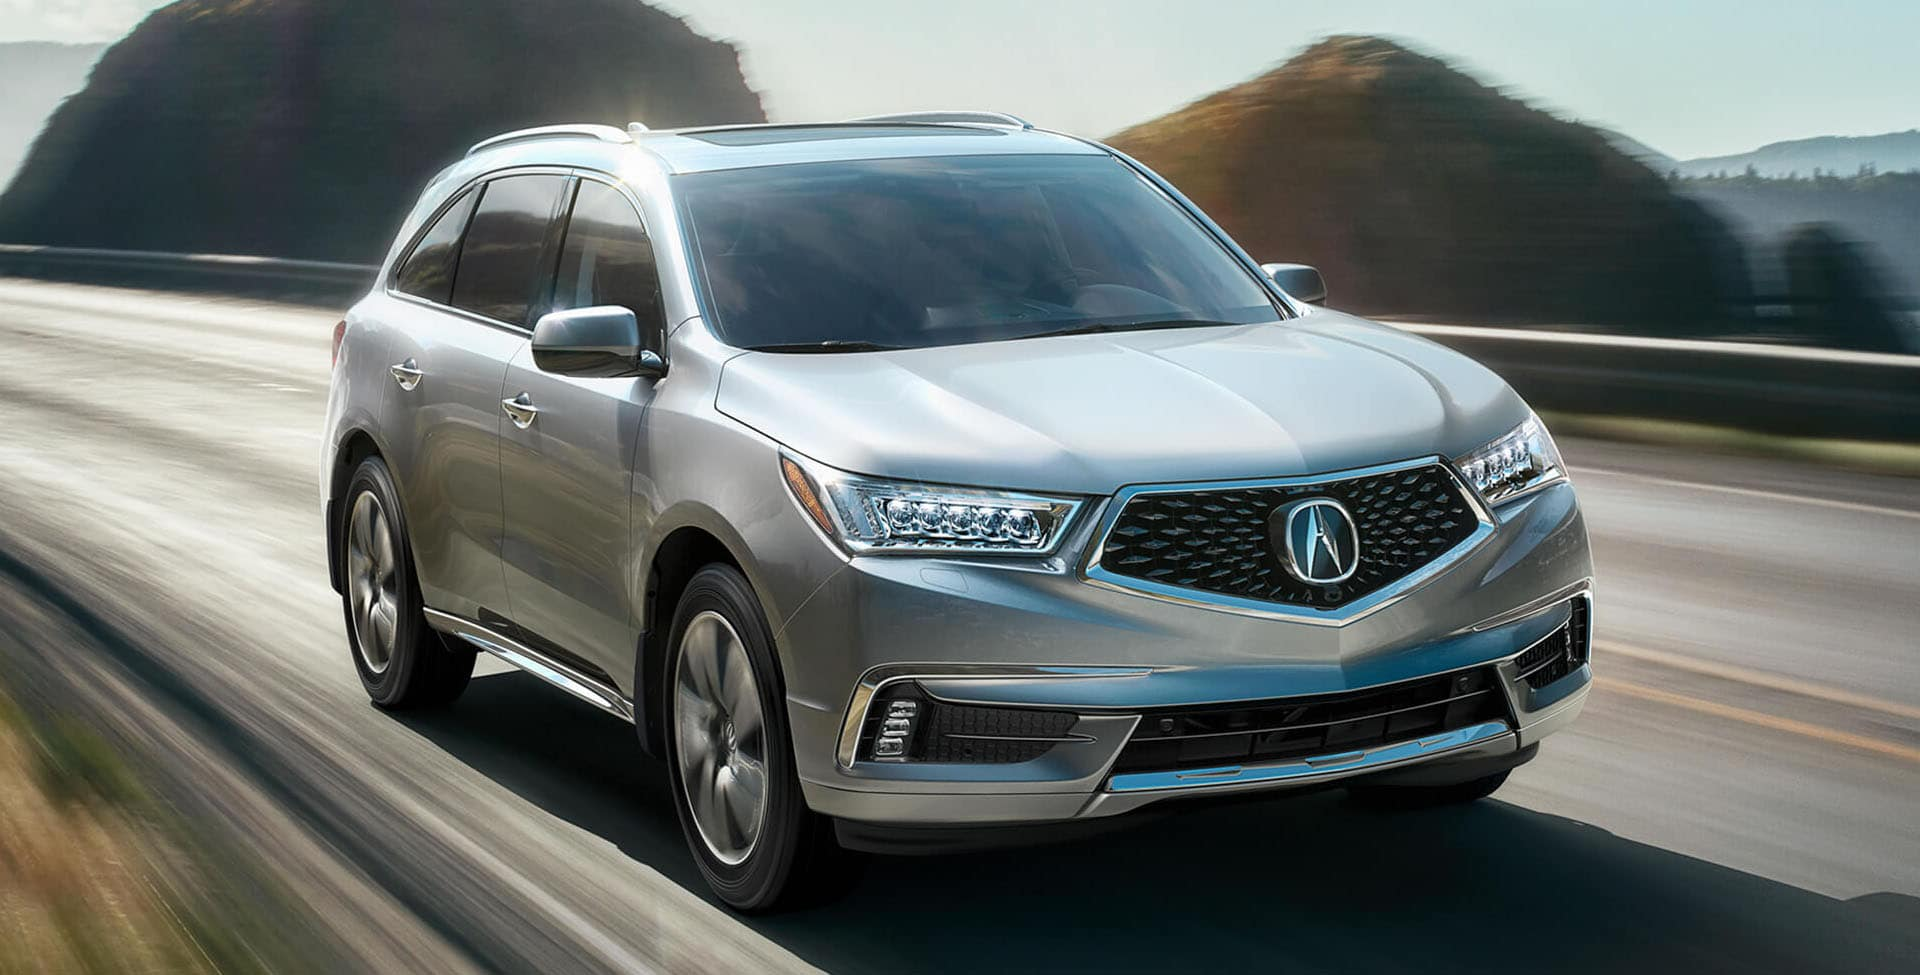 Silver Acura MDX driving through mountains